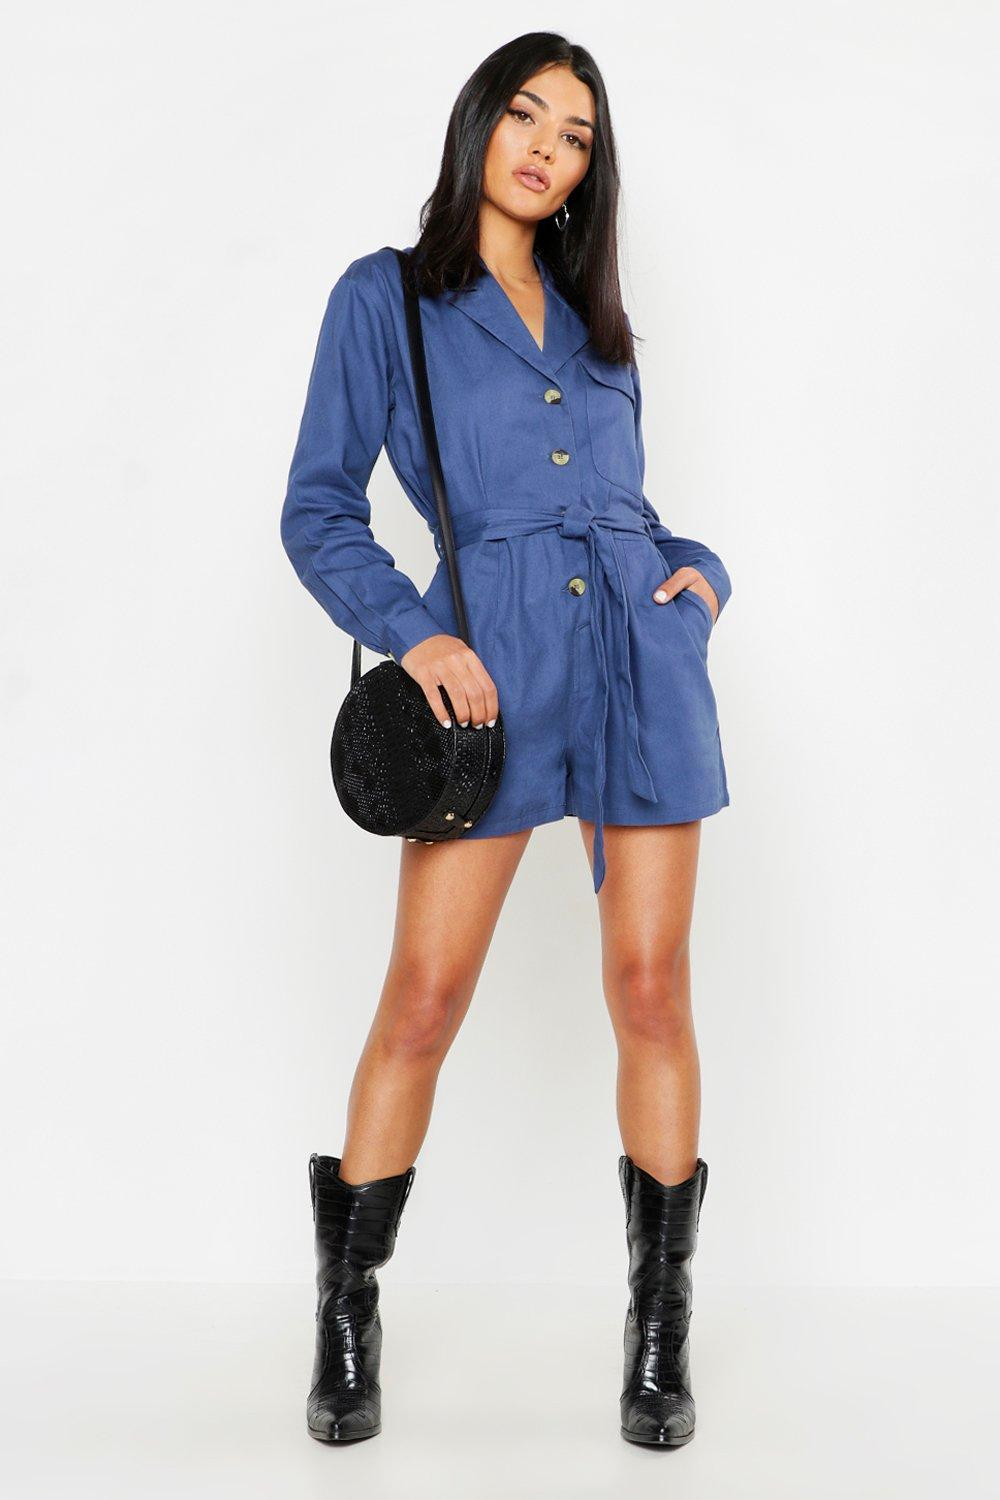 ec7fad2a2c Lyst - Boohoo Utility Belted Denim Playsuit in Blue